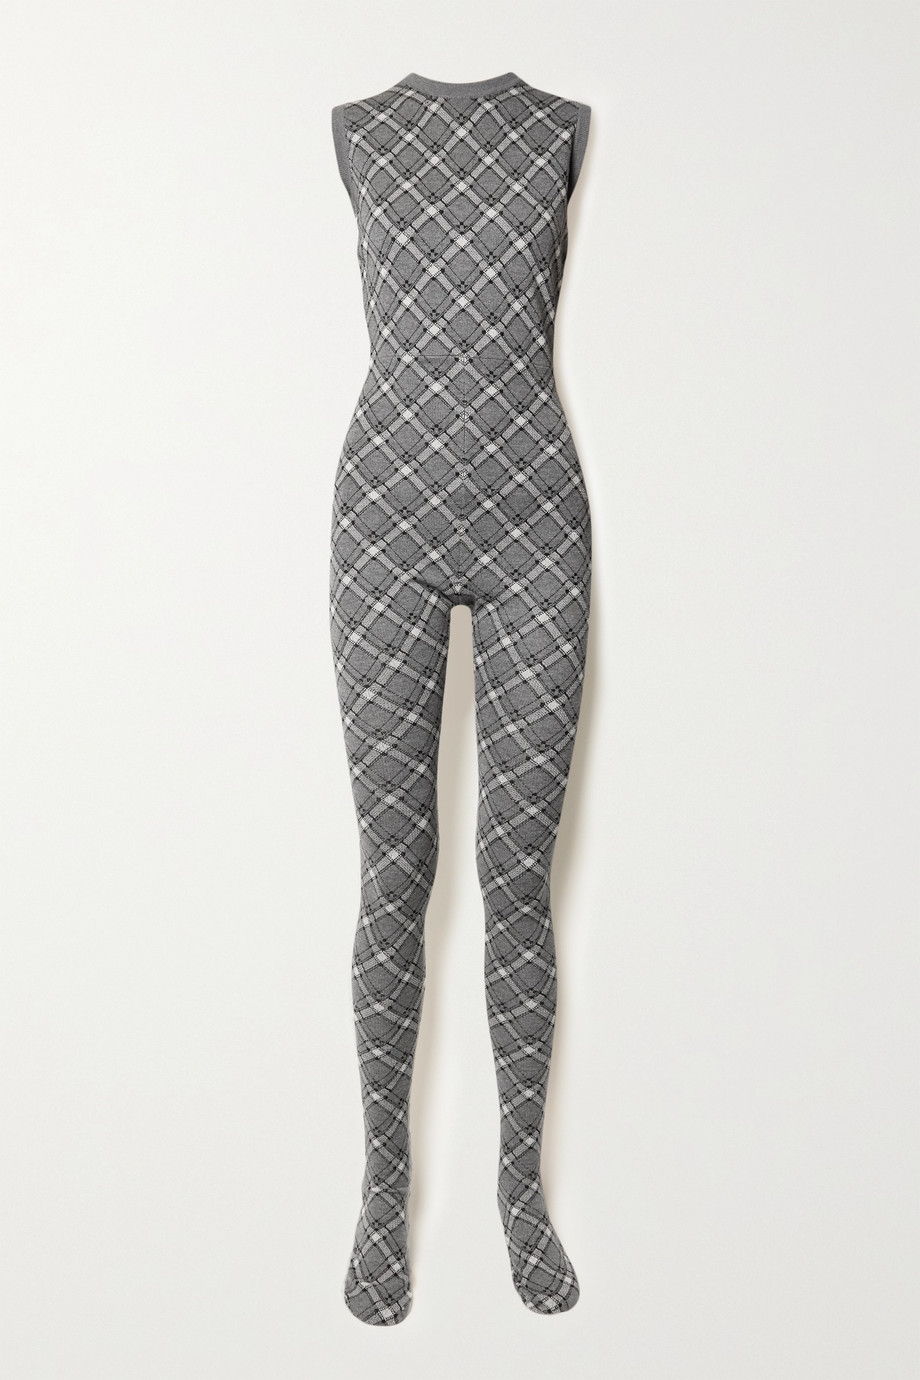 Miu Miu Checked wool jumpsuit